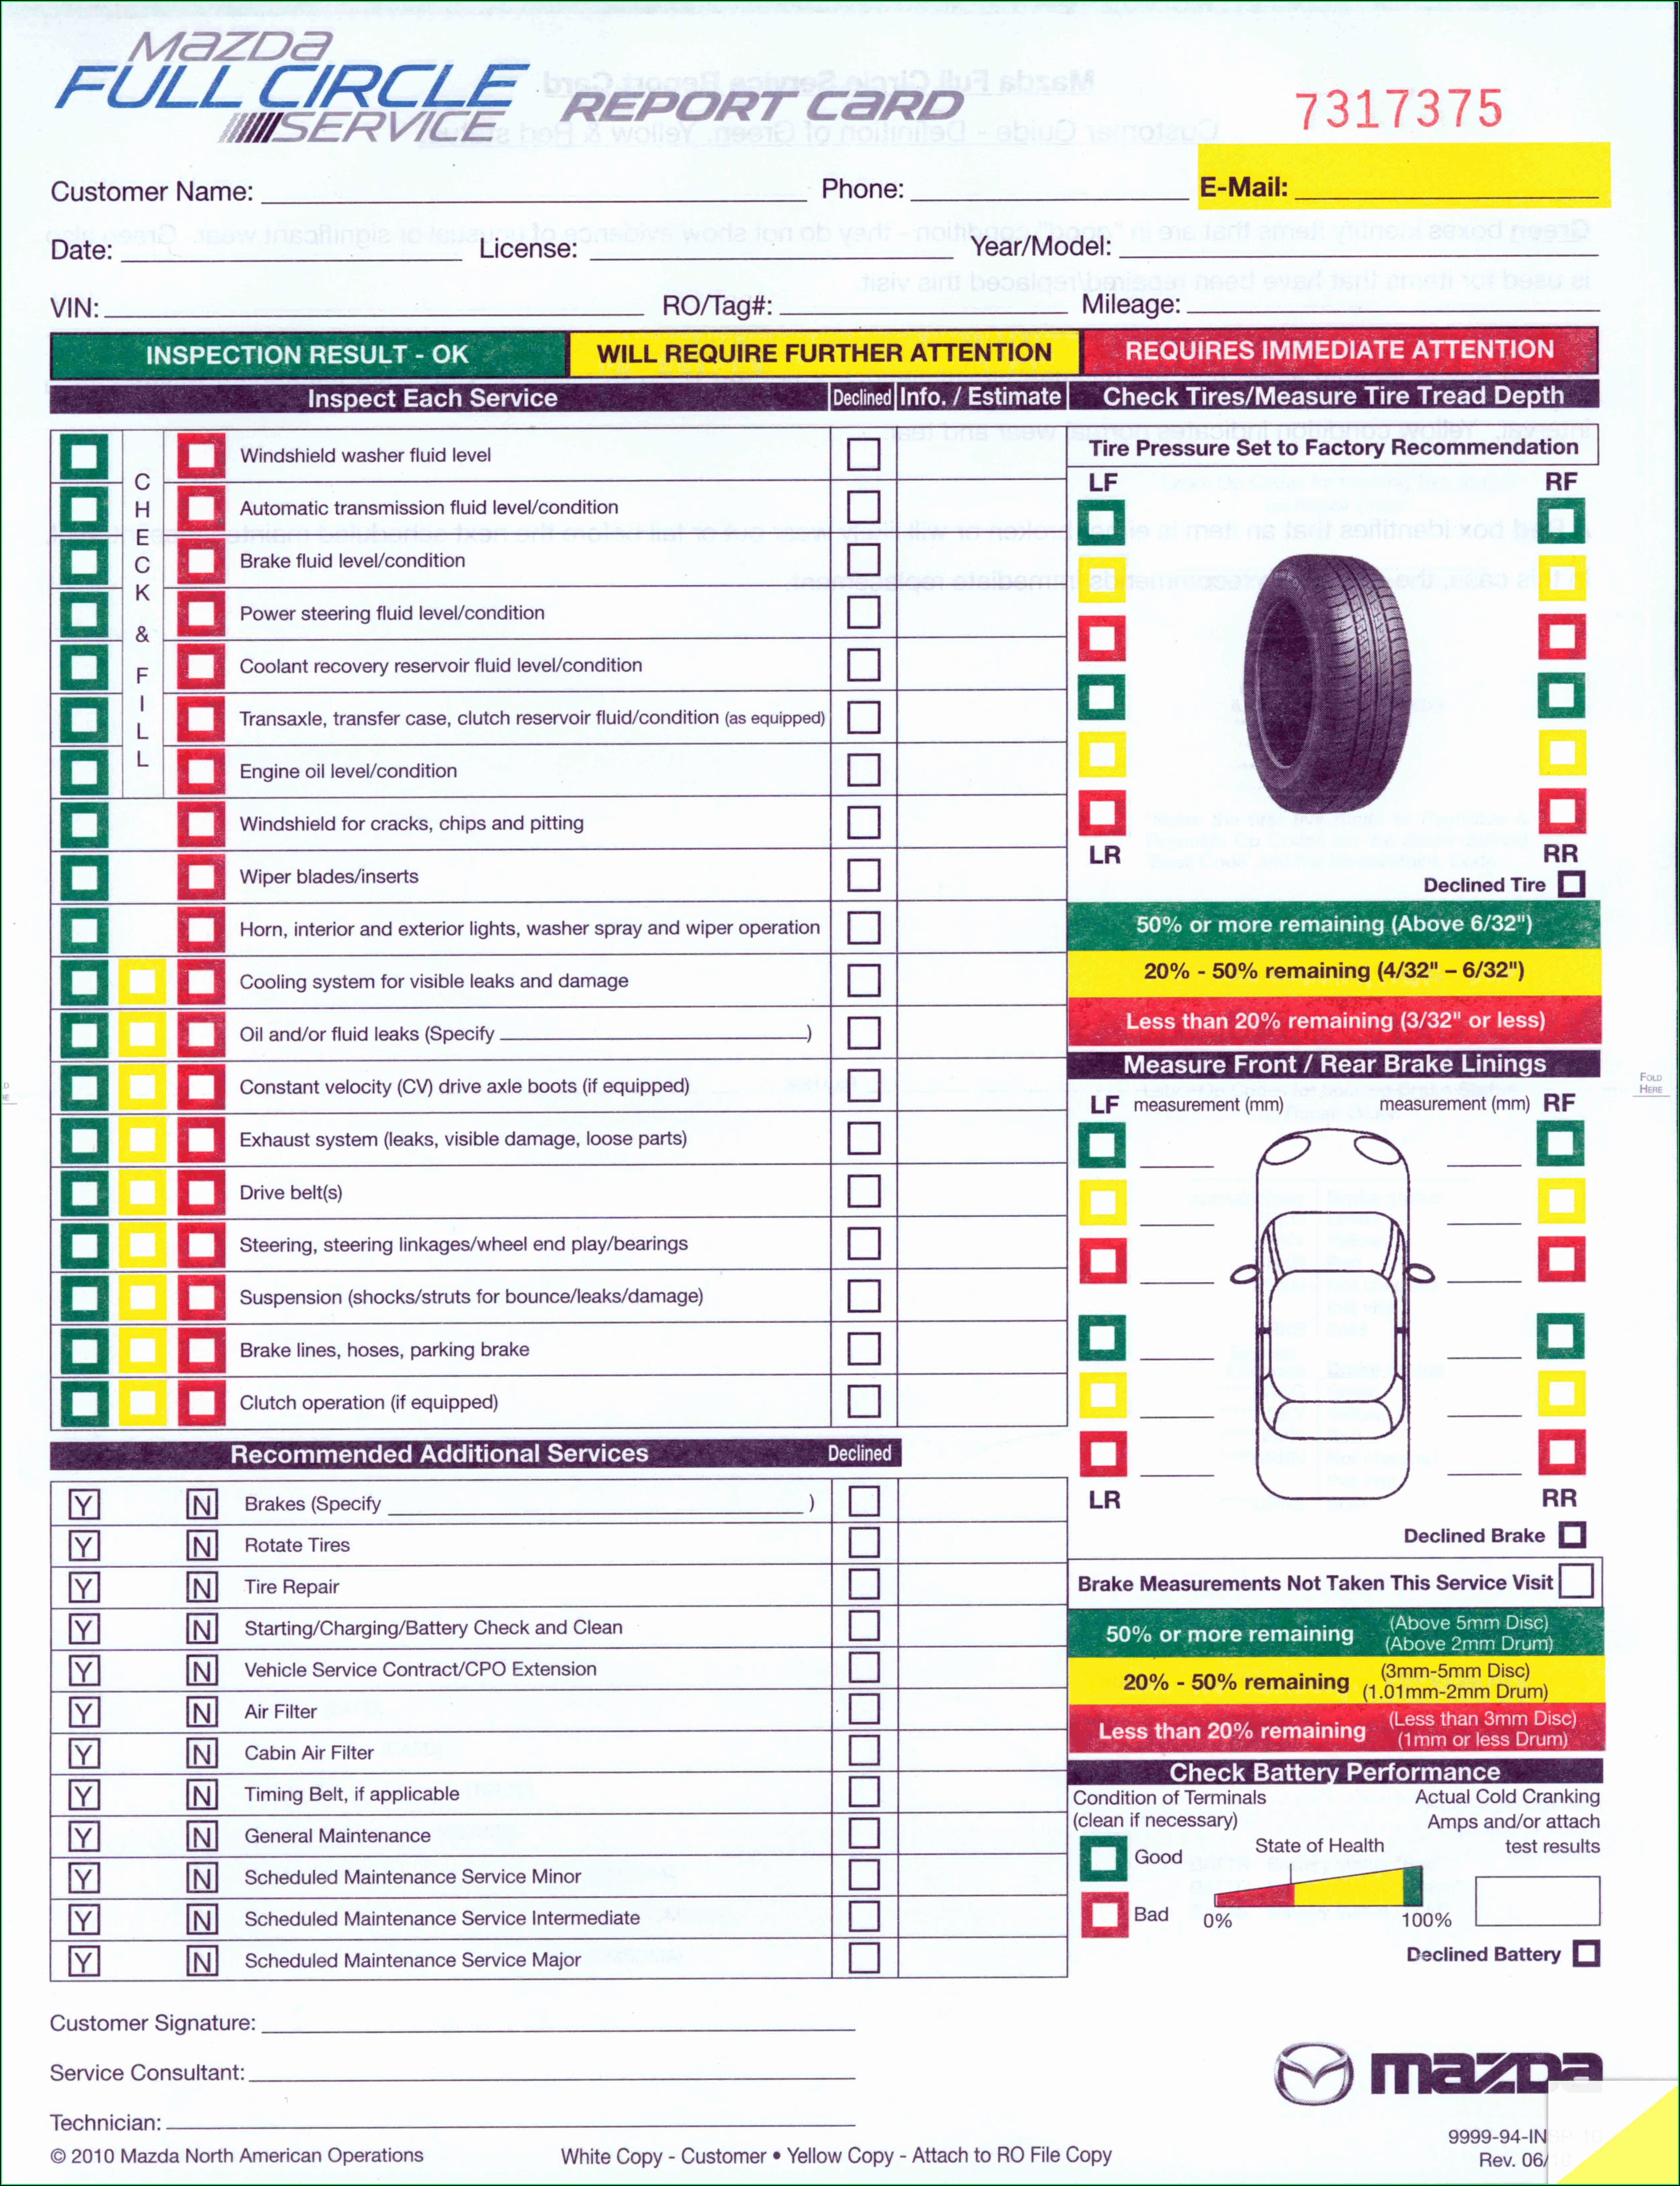 Ford Multi Point Inspection Form Pdf